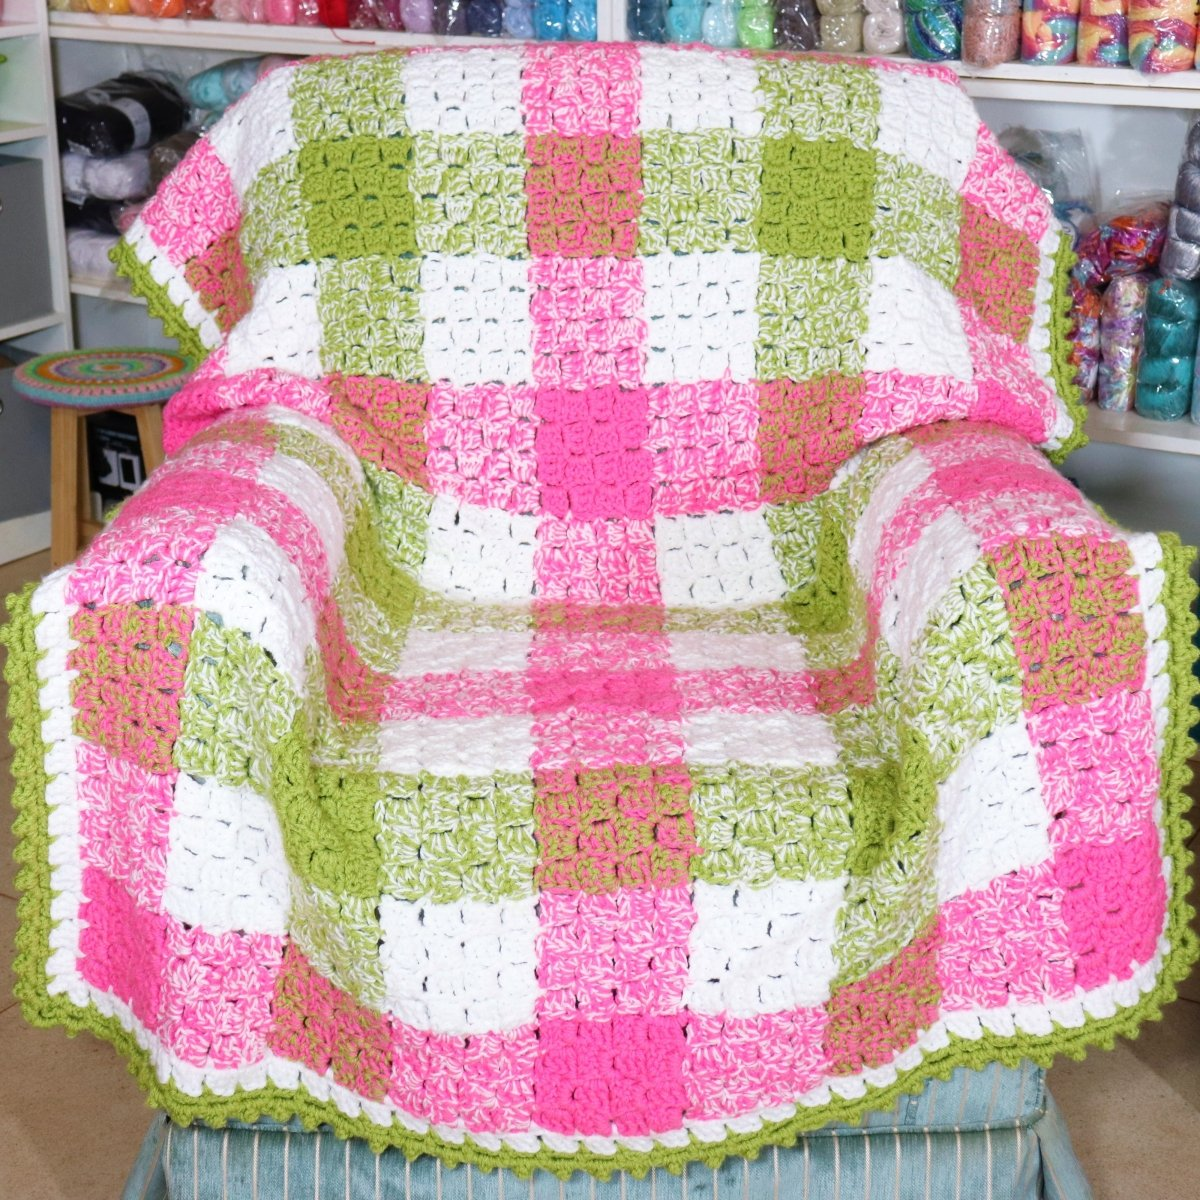 Gingham Crochet Corner to Corner Blanket with Easy Bobble Border - secretyarnery